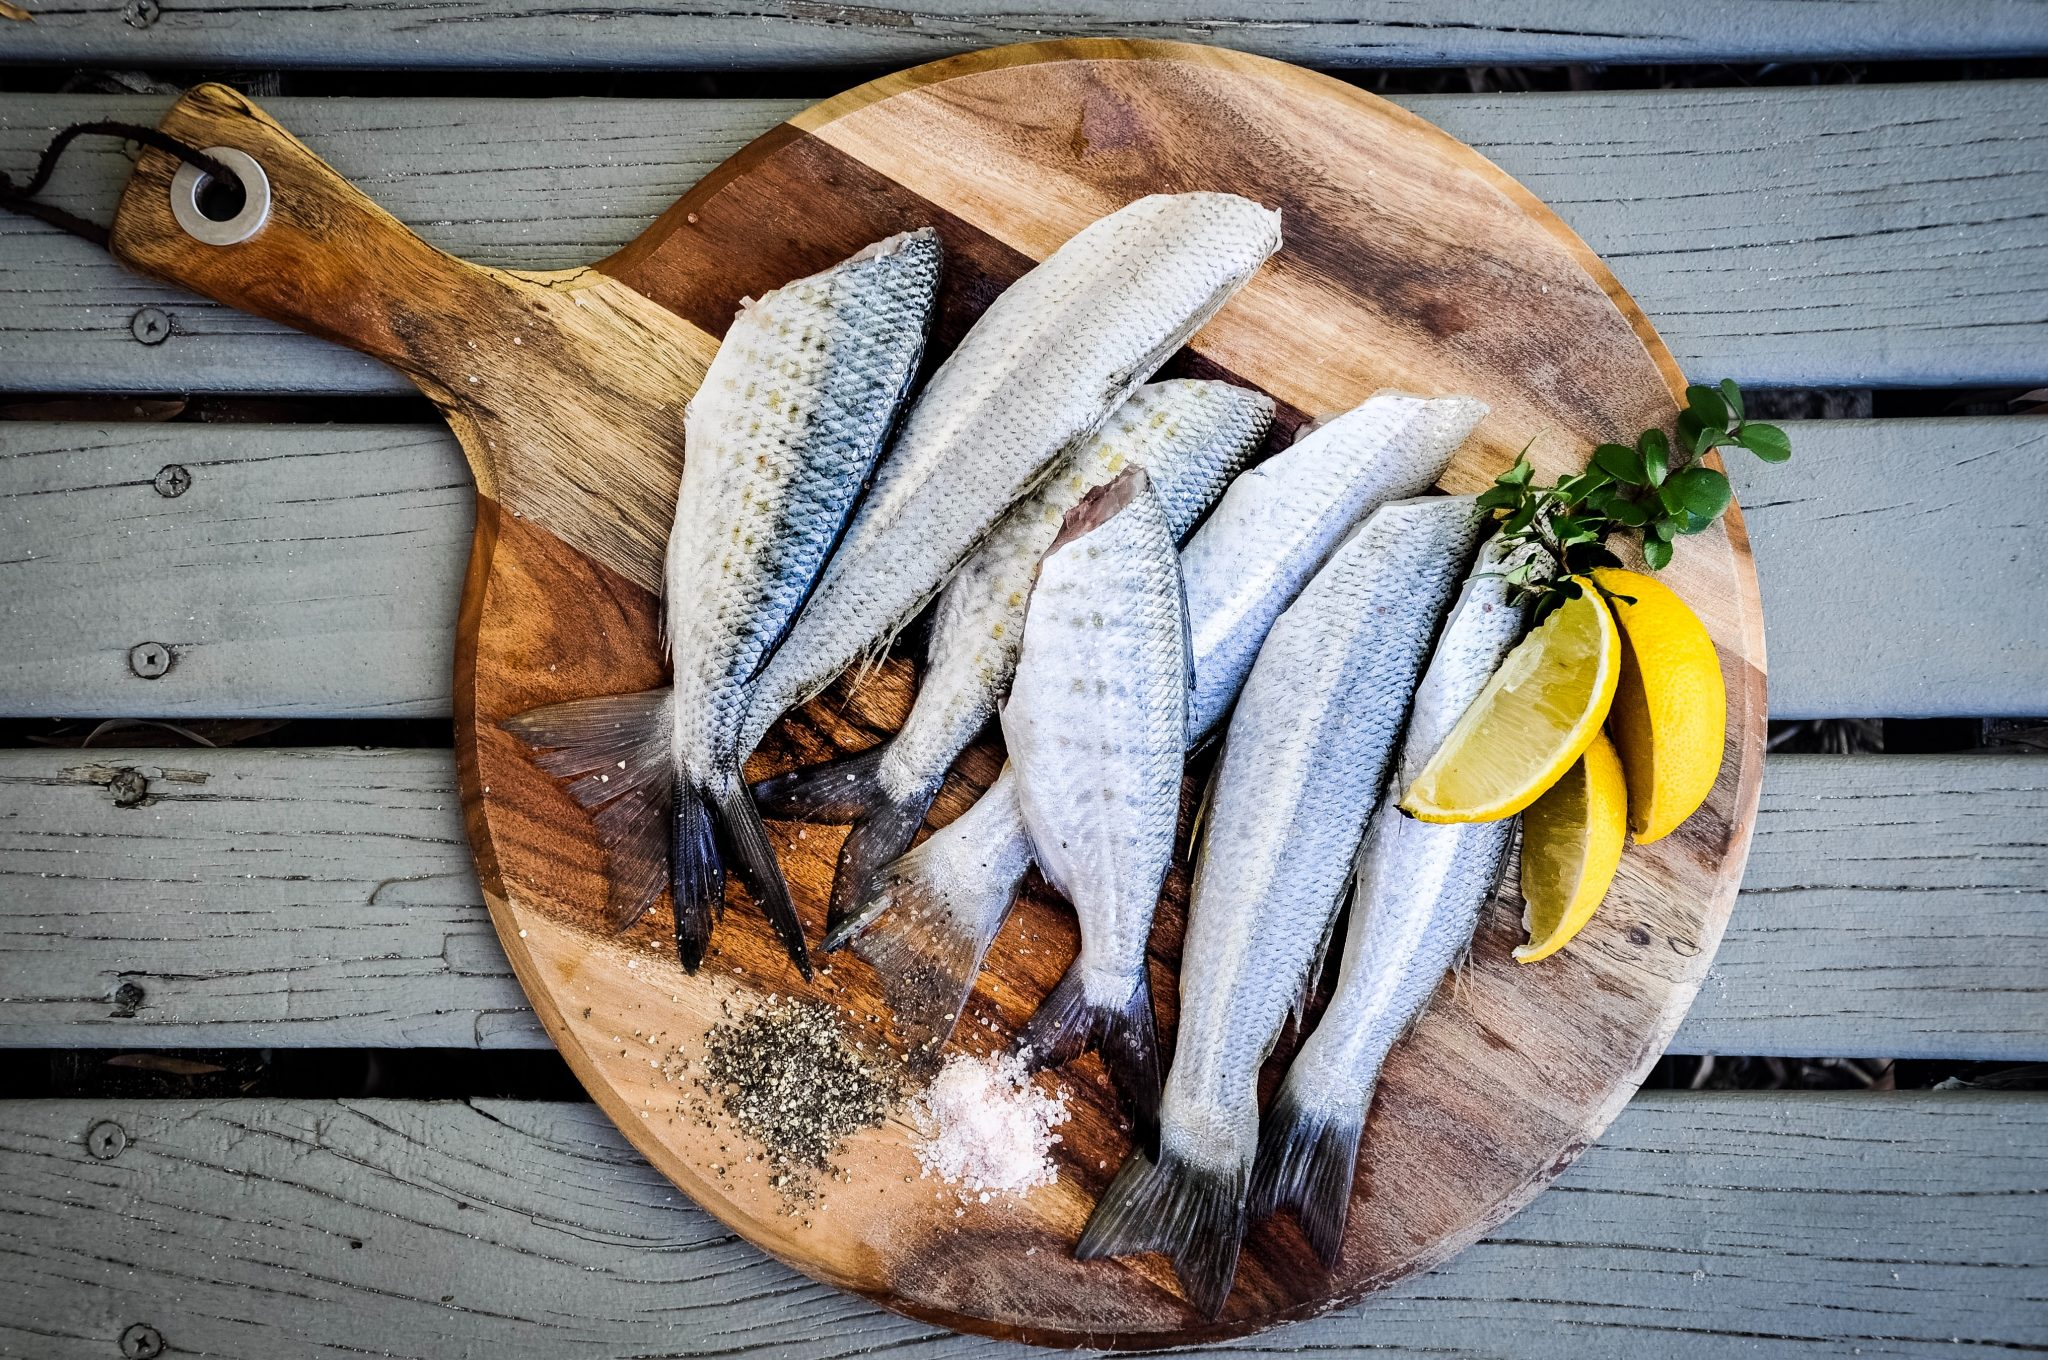 Seven butchered fish on a round cutting board, with lemon slices and salt and pepper